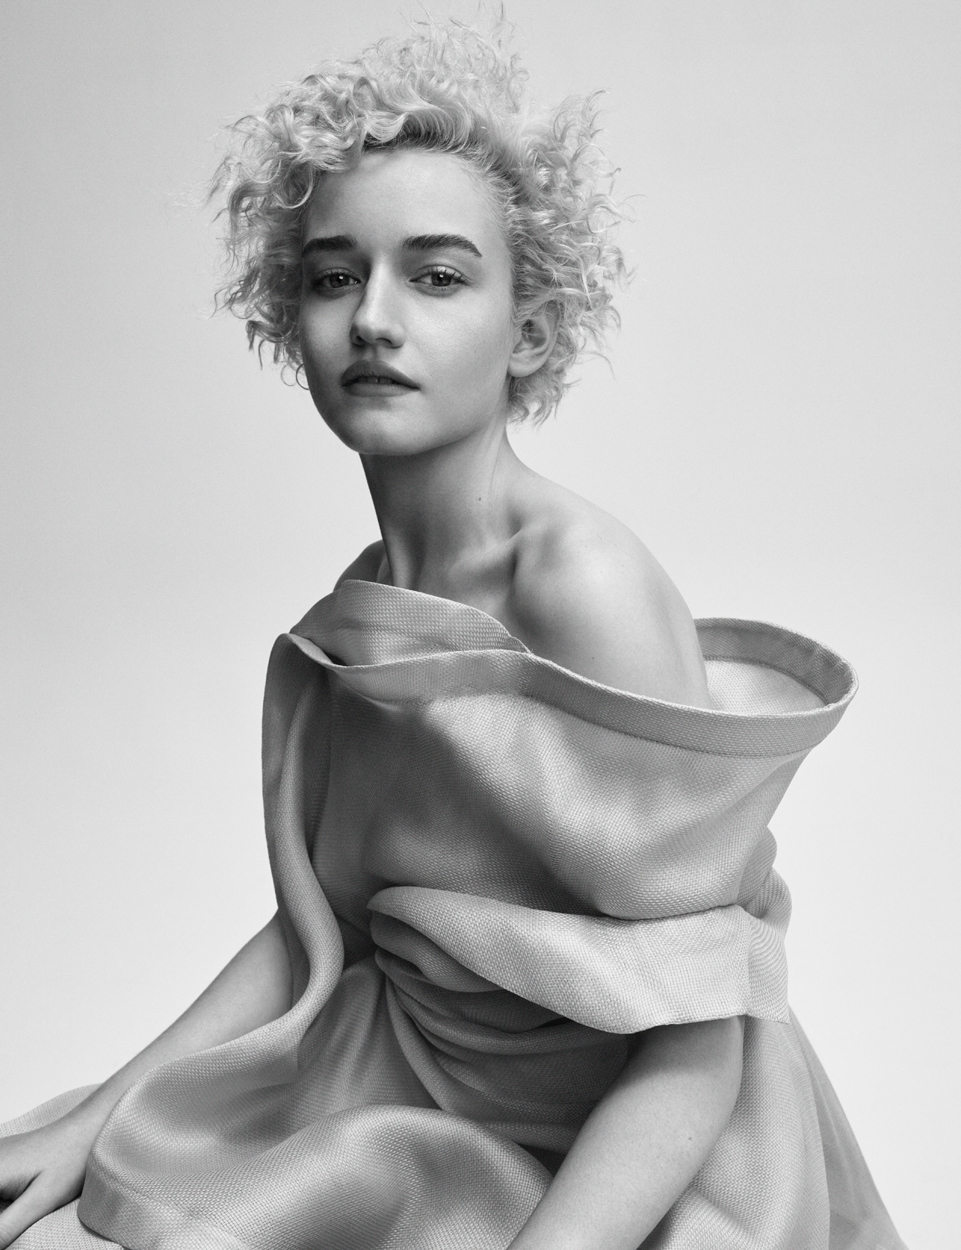 Celebrity Photographer Michael Schwartz: Julia Garner for S Moda Magazine